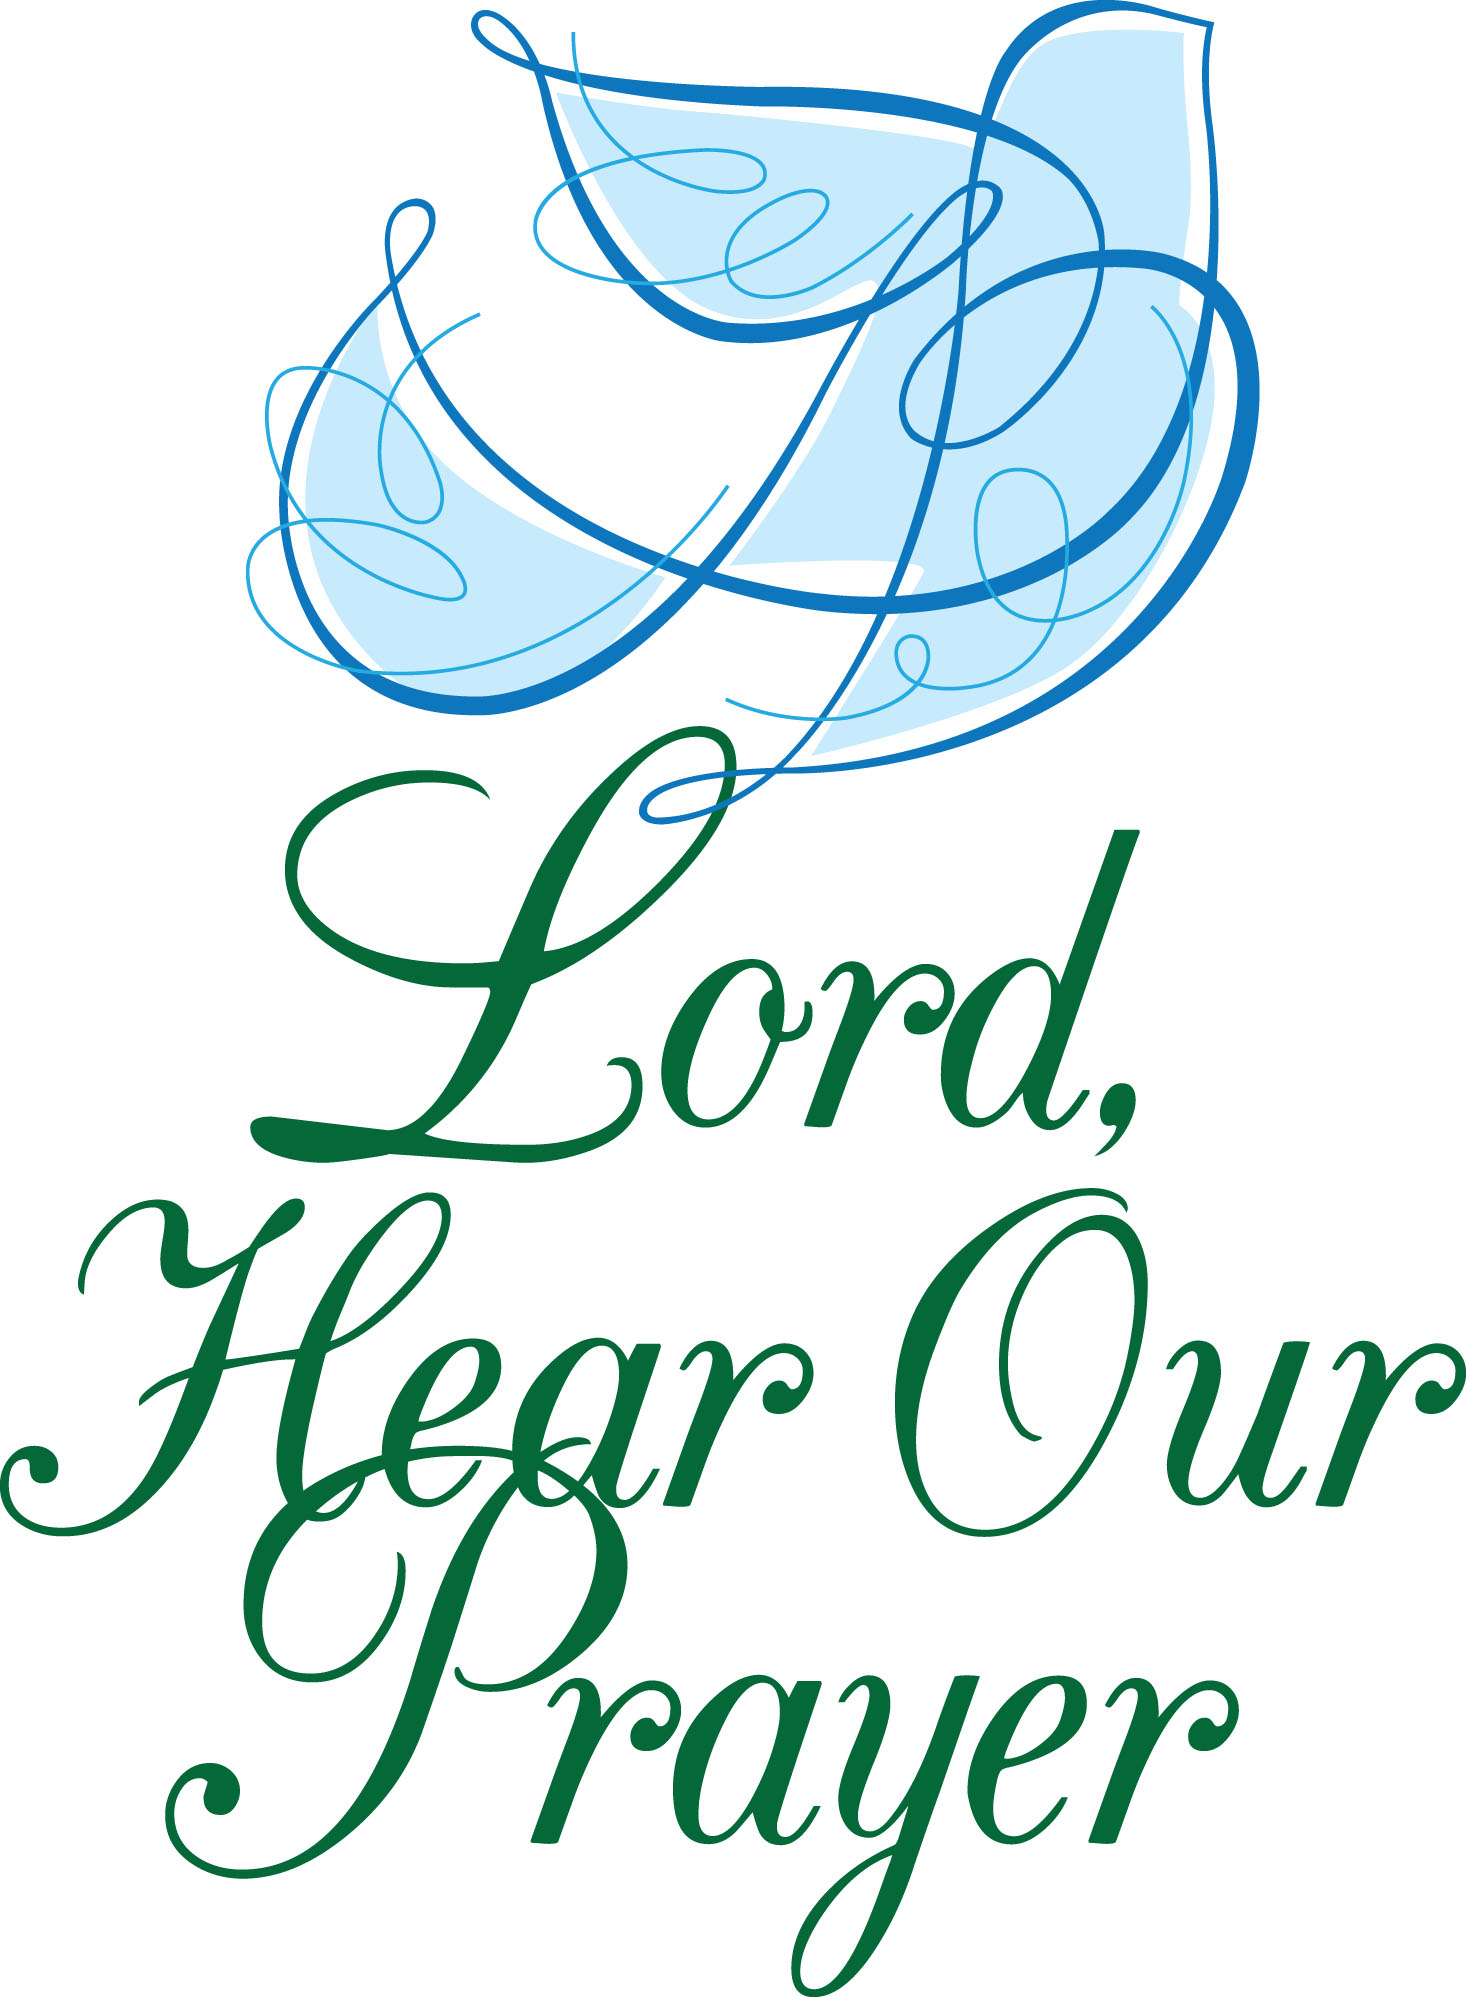 The lord-s prayer clipart picture royalty free download Free Lord\'s Prayer Cliparts, Download Free Clip Art, Free ... picture royalty free download